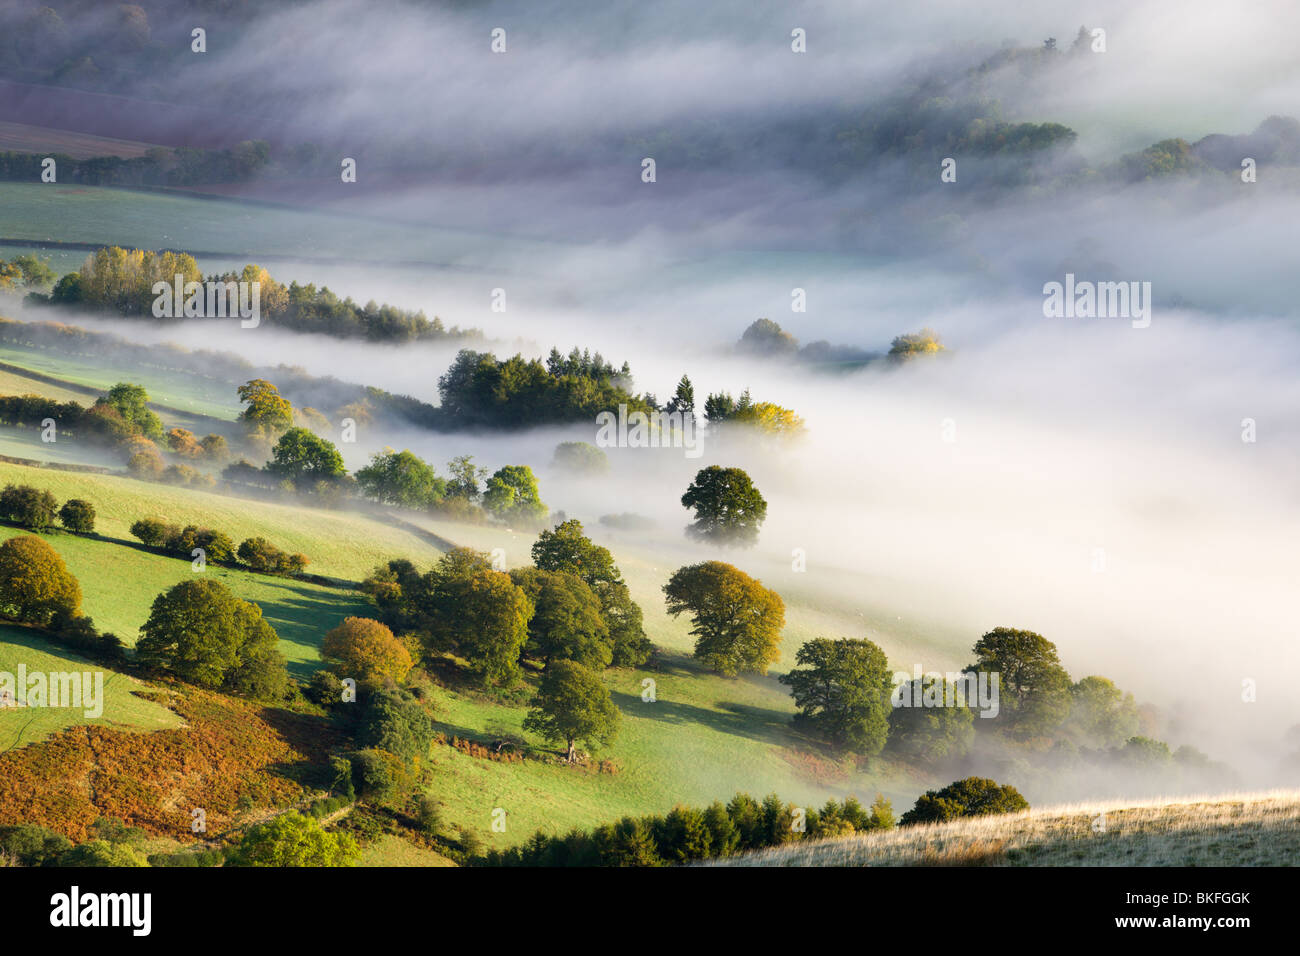 Nebel bedeckt Hügellandschaft in der Usk Valley, Brecon Beacons National Park, Powys, Wales, UK. Herbst (Oktober) Stockbild